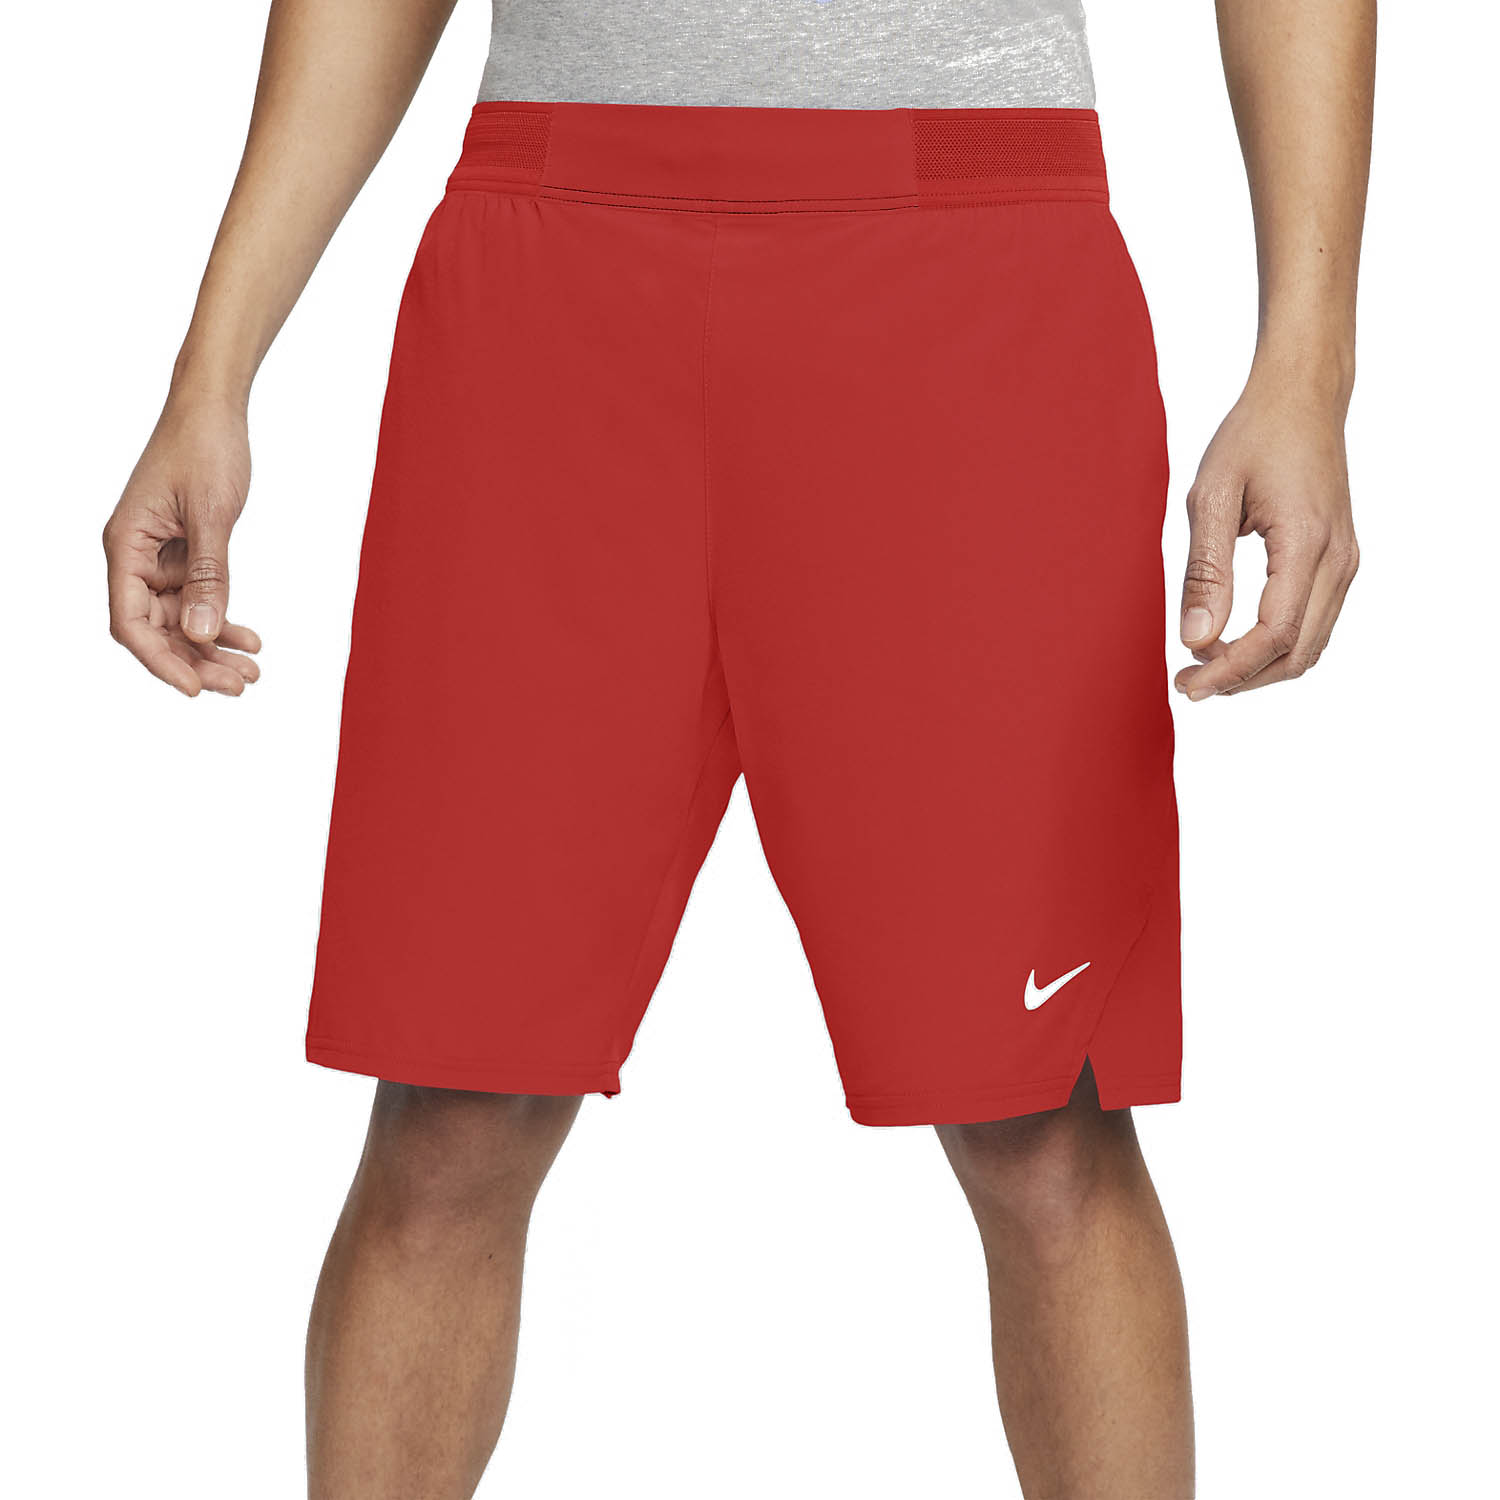 Nike Flex Ace 9in Shorts - Habanero Red/White